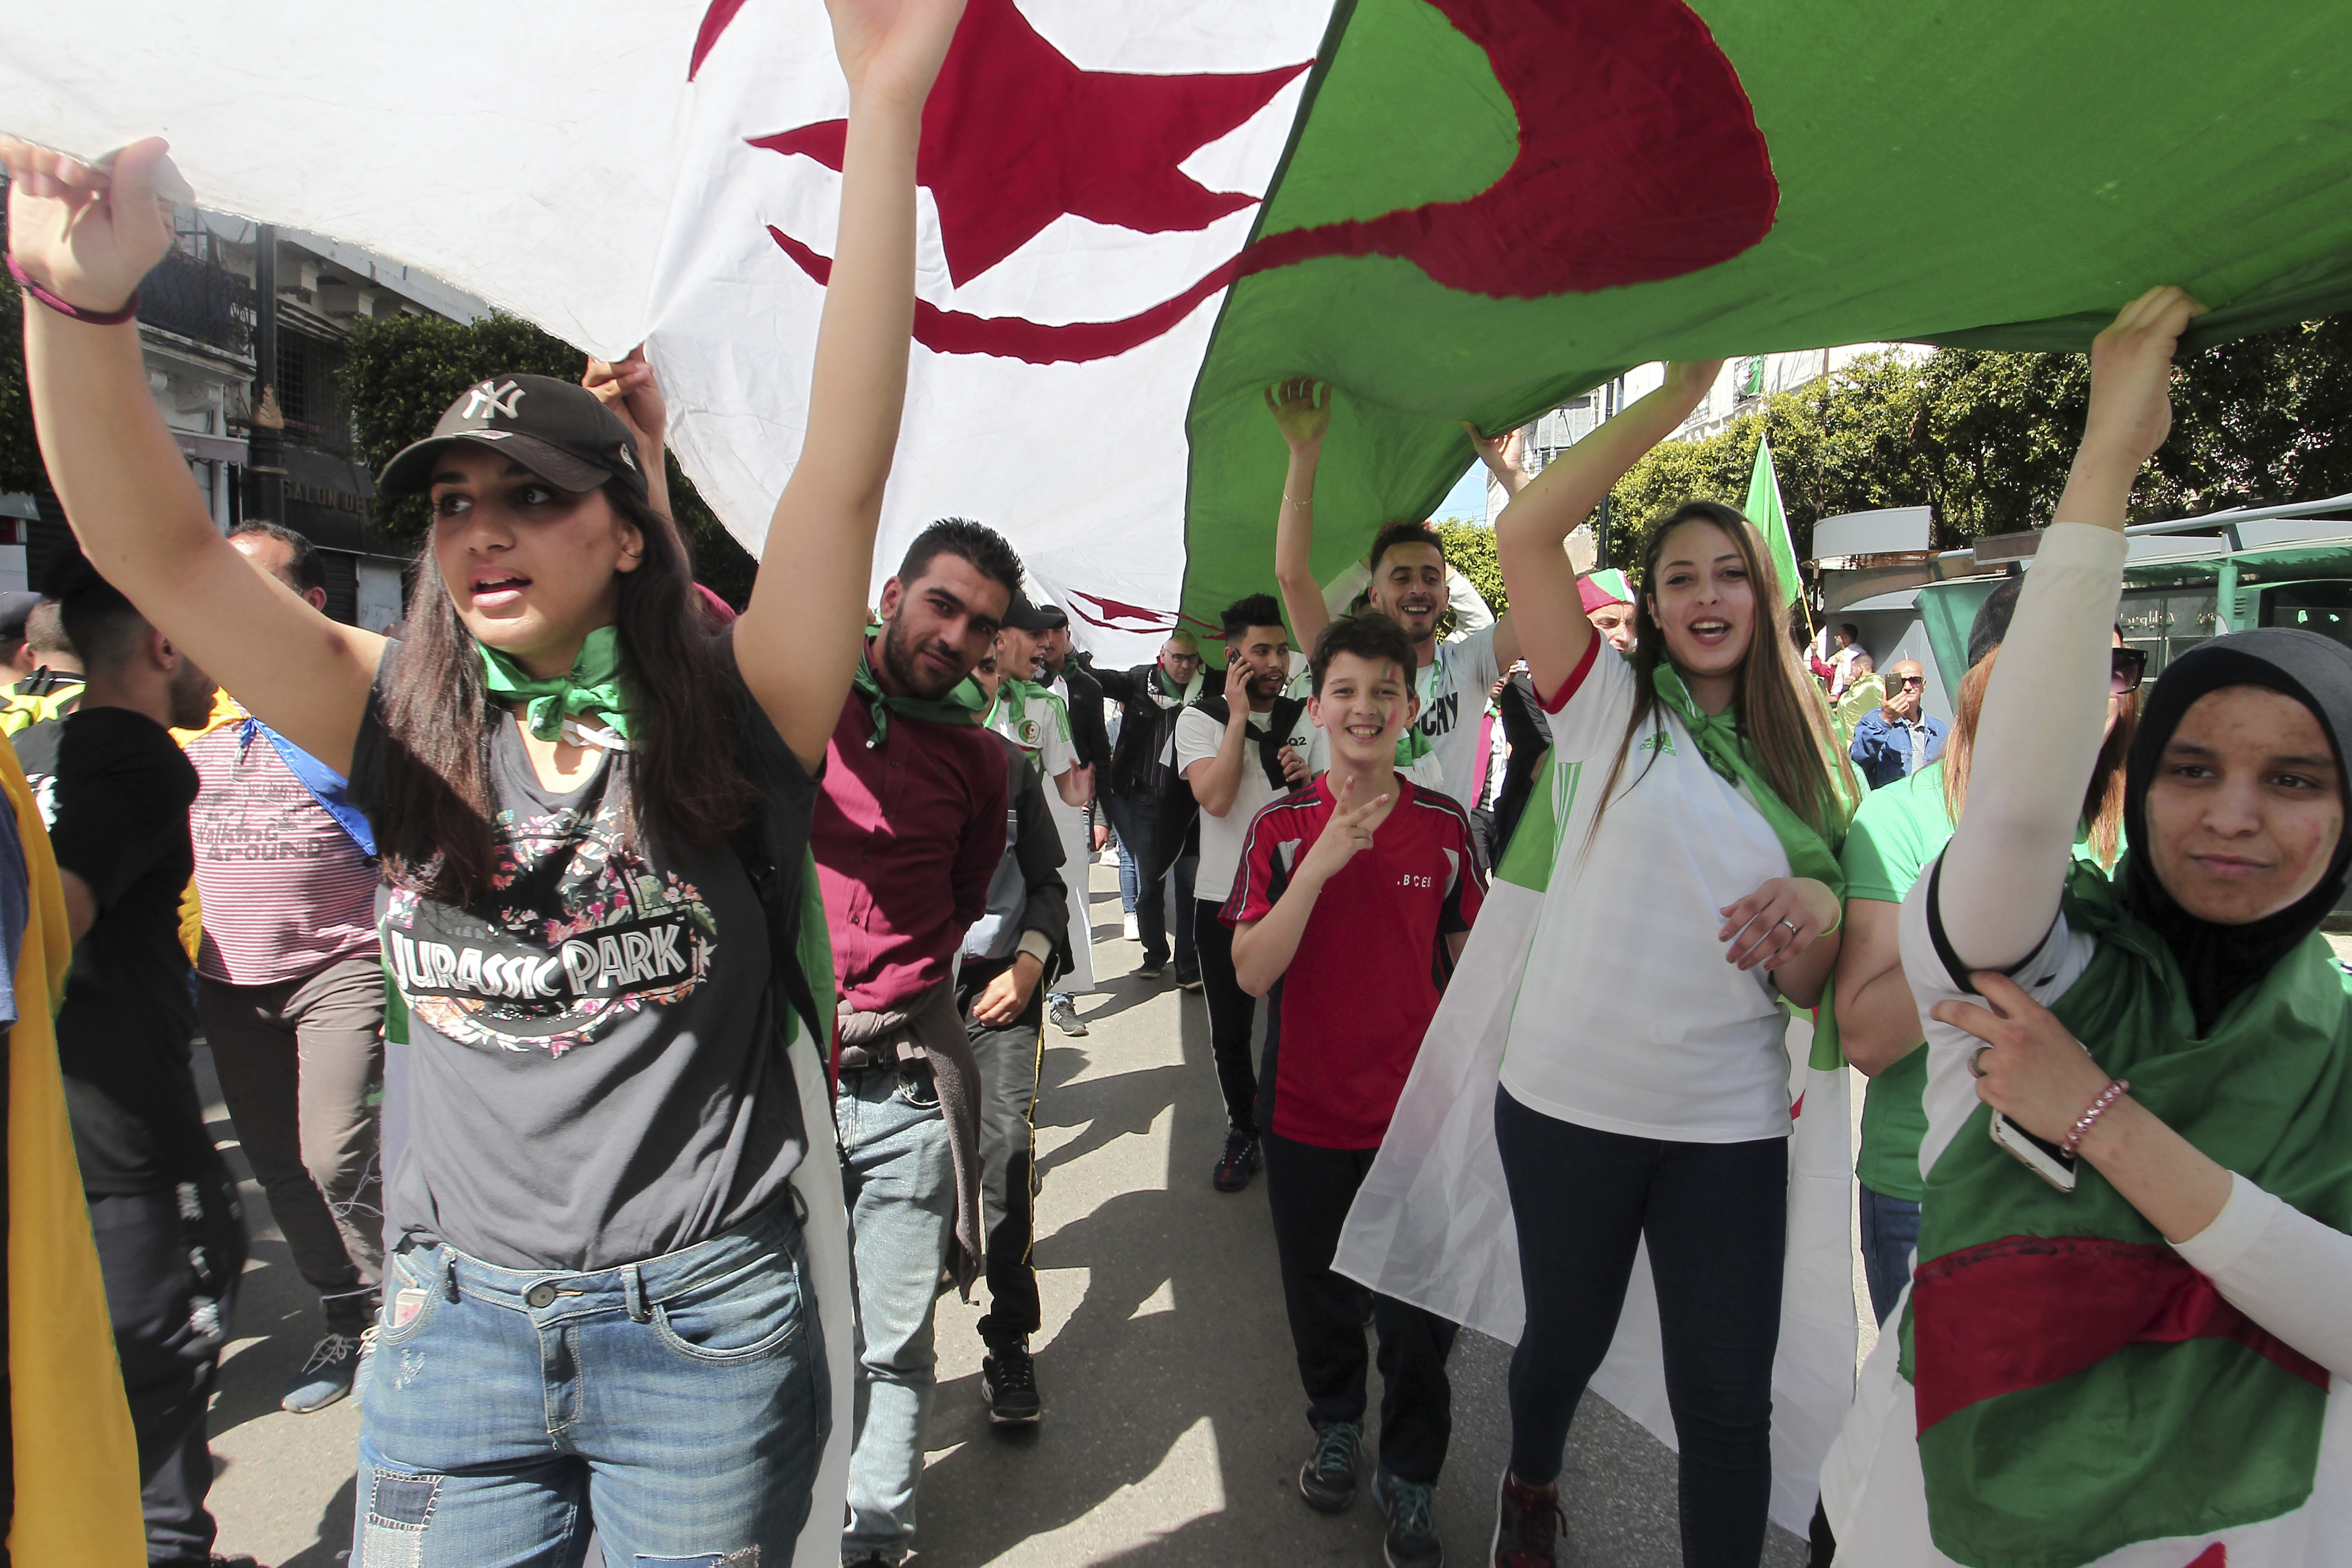 Demonstrators carry a giant Algerian flag during a protest in Algiers, Friday, April 26, 2019. Algerians are massing for a 10th week of protests against their country's ruling class, calling for the ex-president's brother to be put on trial. (AP Photo/Fateh Guidoum)